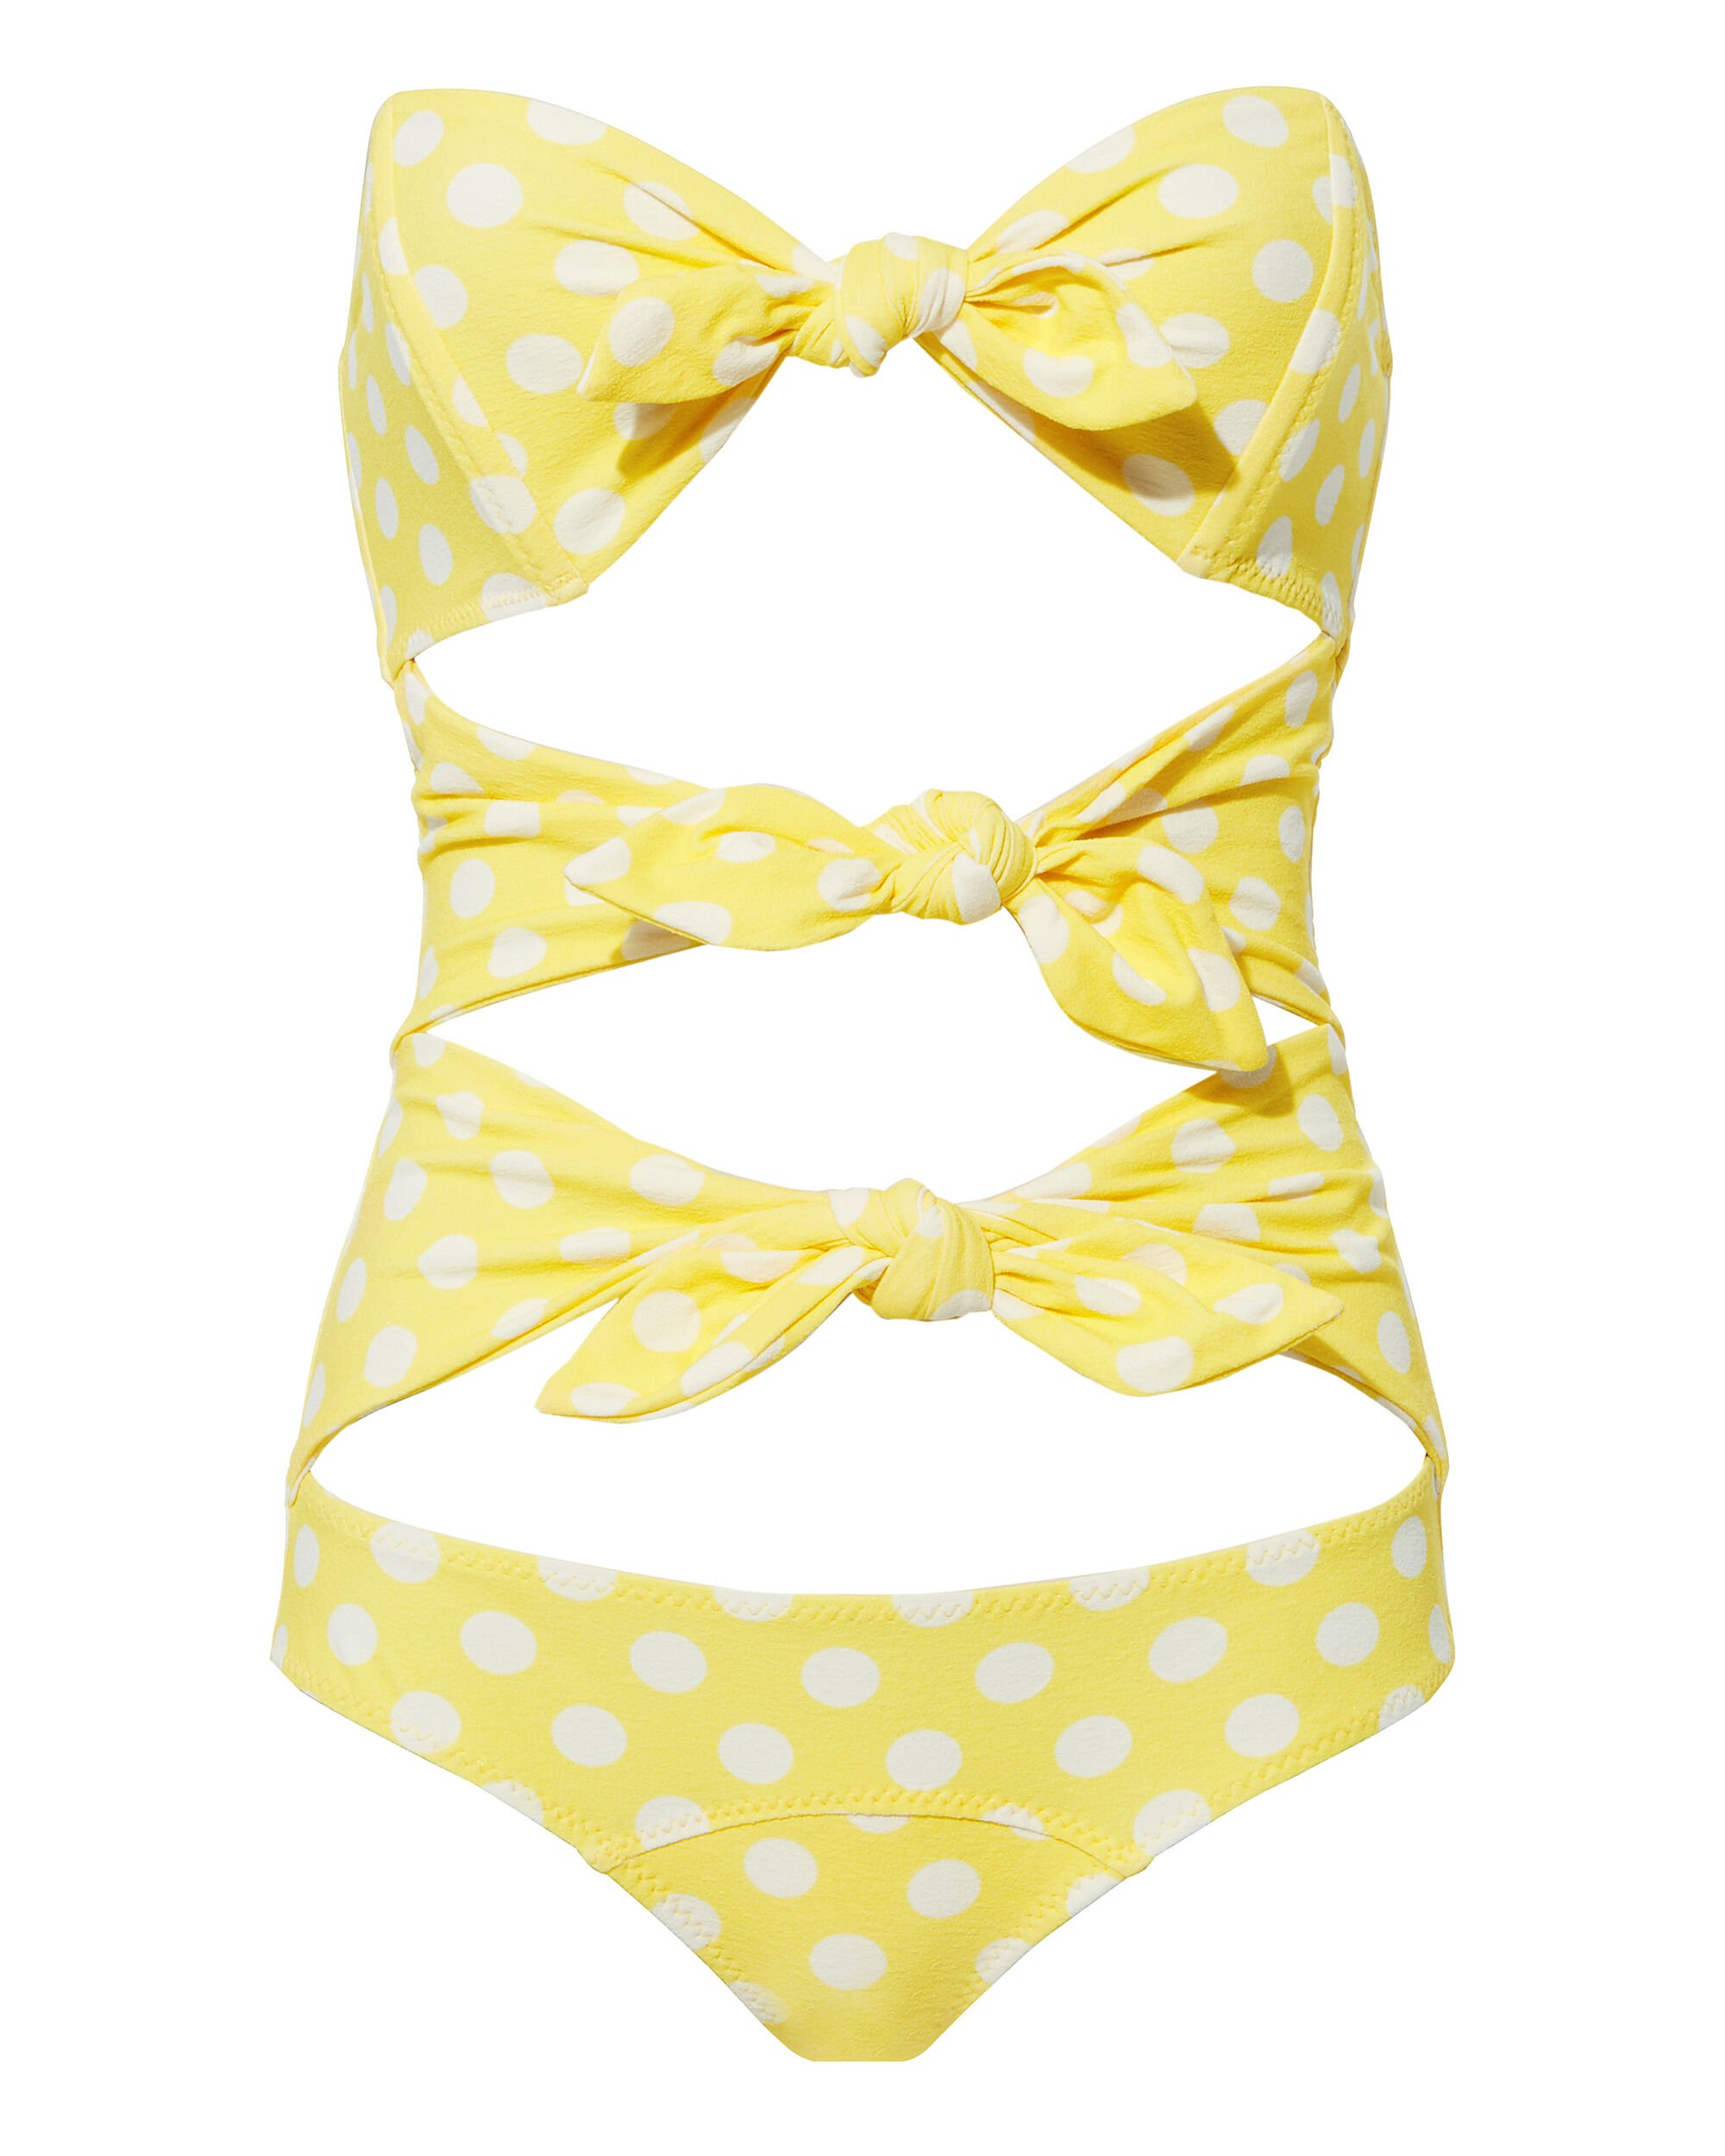 Yellow Polka Dot One Piece Swimsuit, YELLOW, hi-res